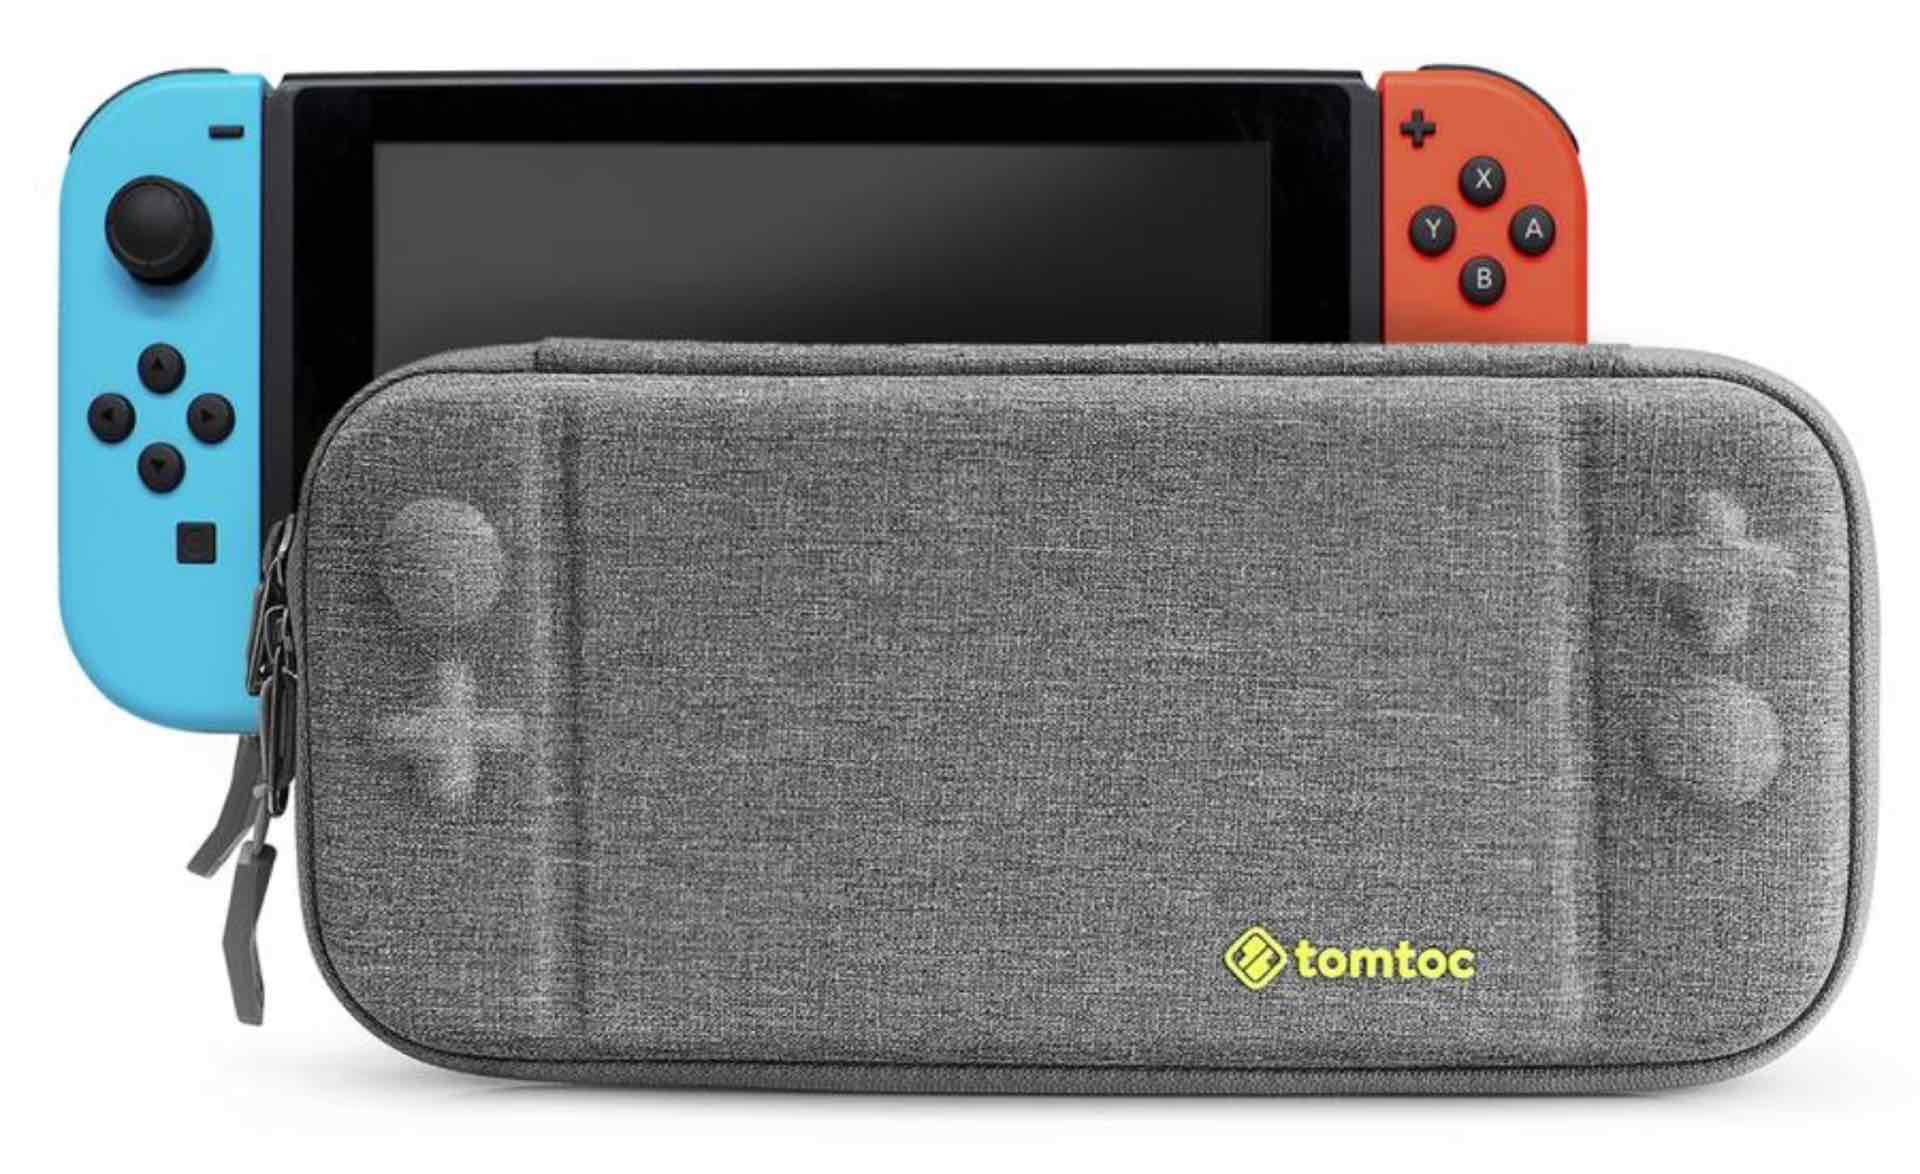 Tomtoc ultra-slim case for Nintendo Switch. ($17)